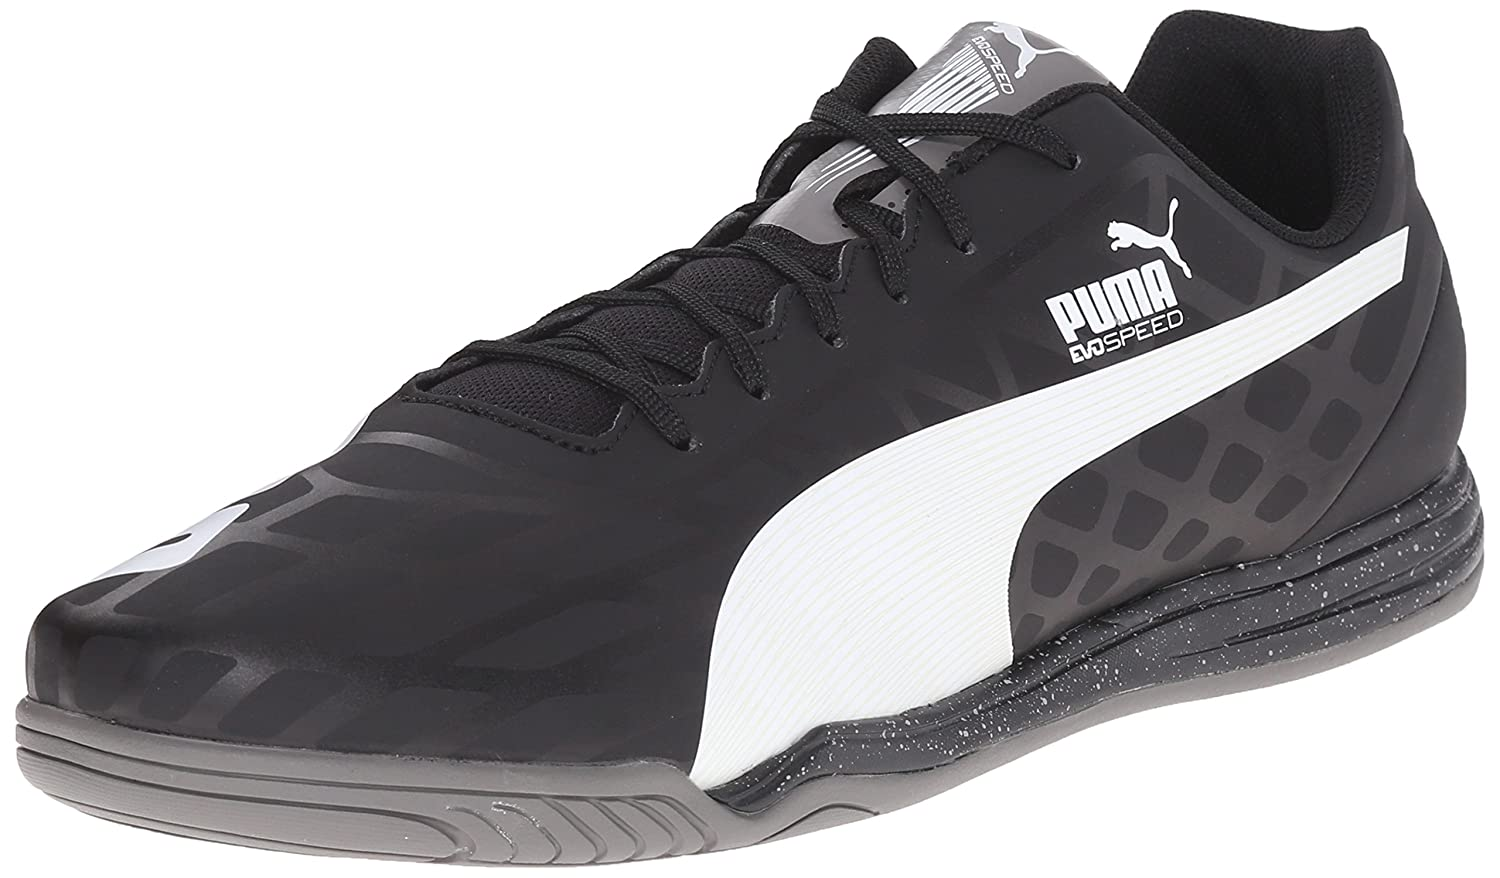 PUMA Men's Evospeed Star IV Soccer Shoe